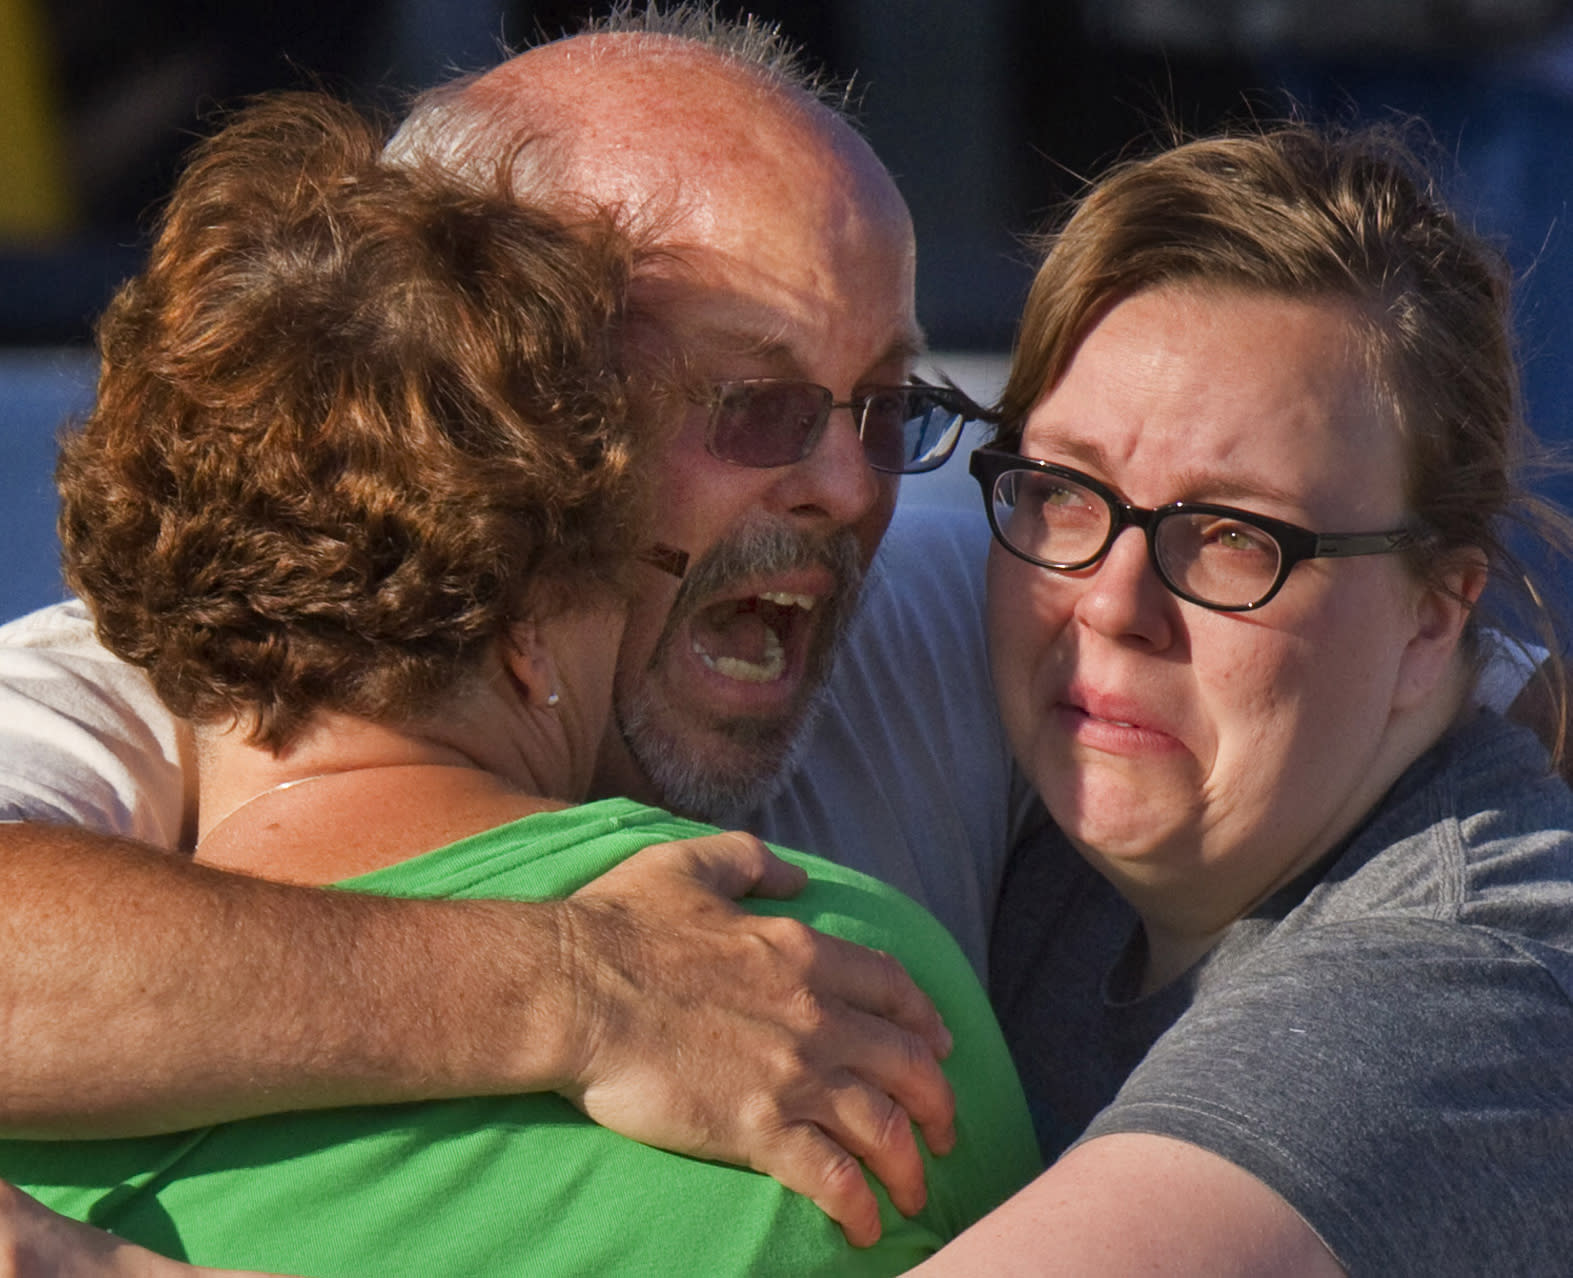 By The Numbers: Colorado theater shooting trial